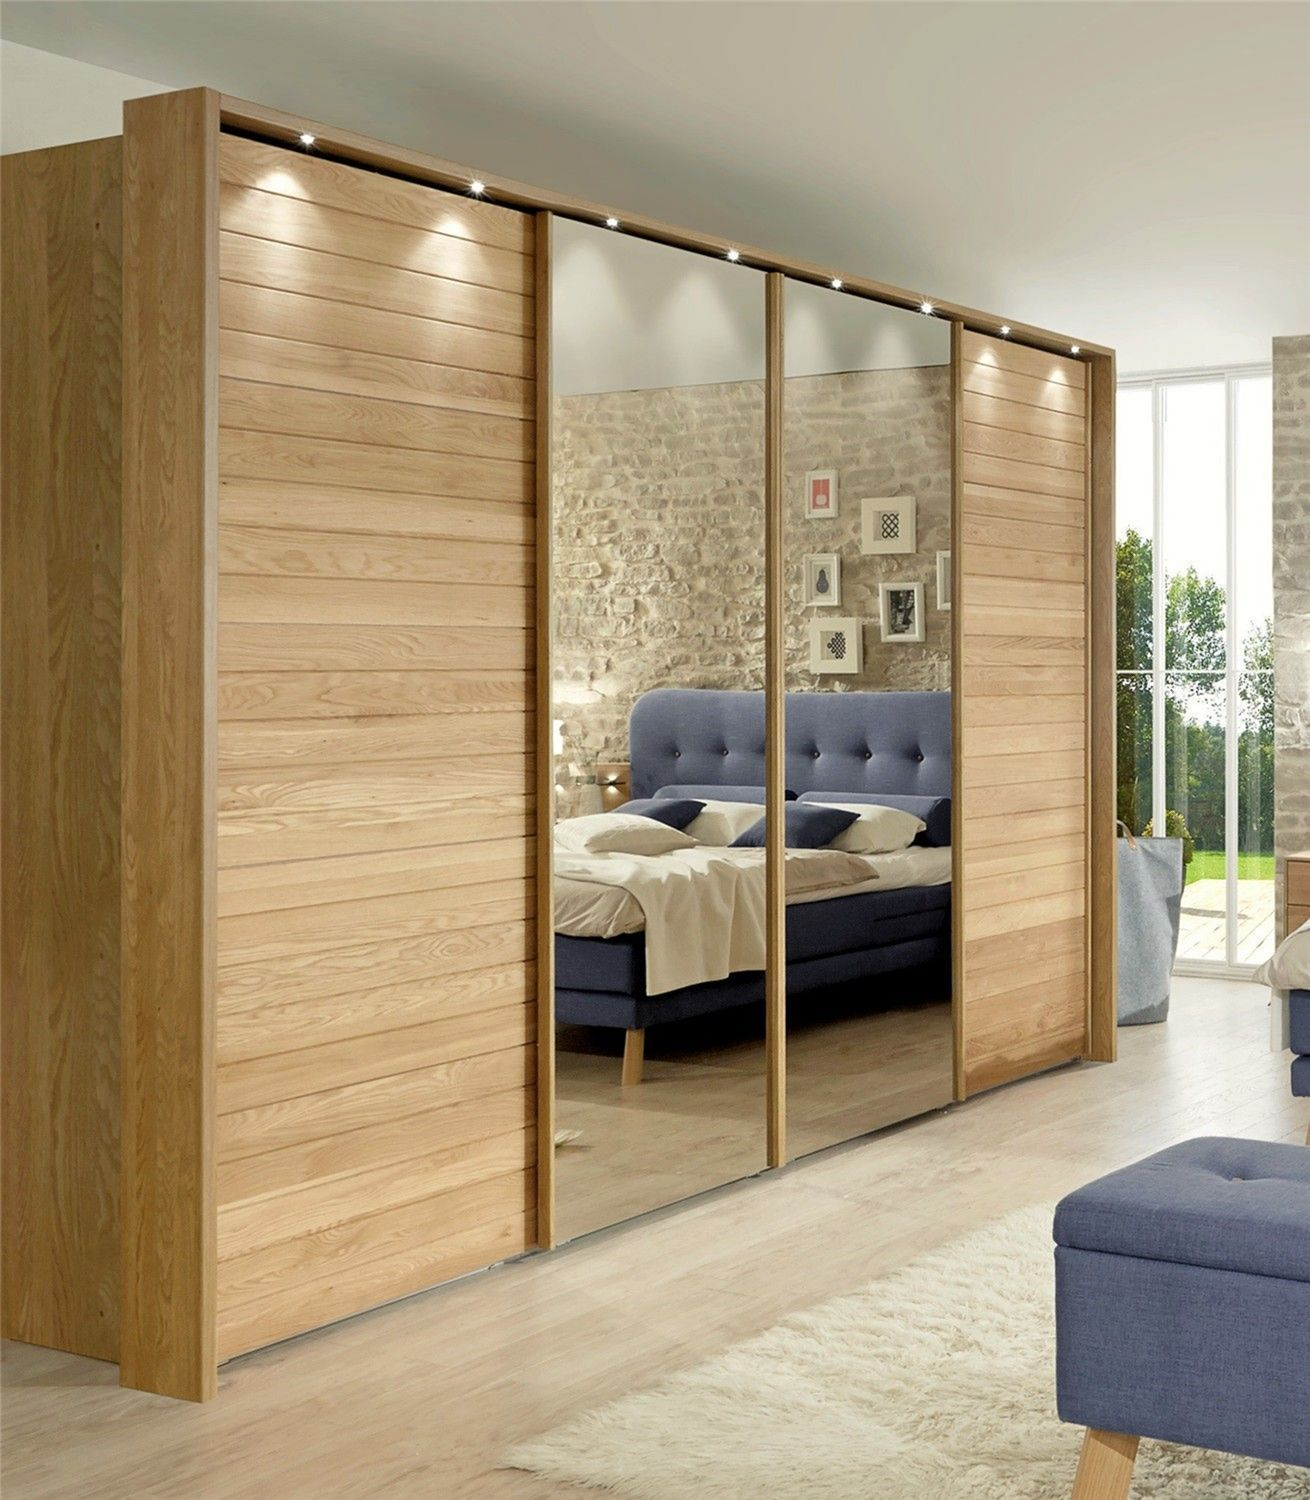 Top 30 Modern Wardrobe Design Ideas For Your Small Bedroom Sliding Door Wardrobe Designs Wardrobe Door Designs Wardrobe Design Bedroom